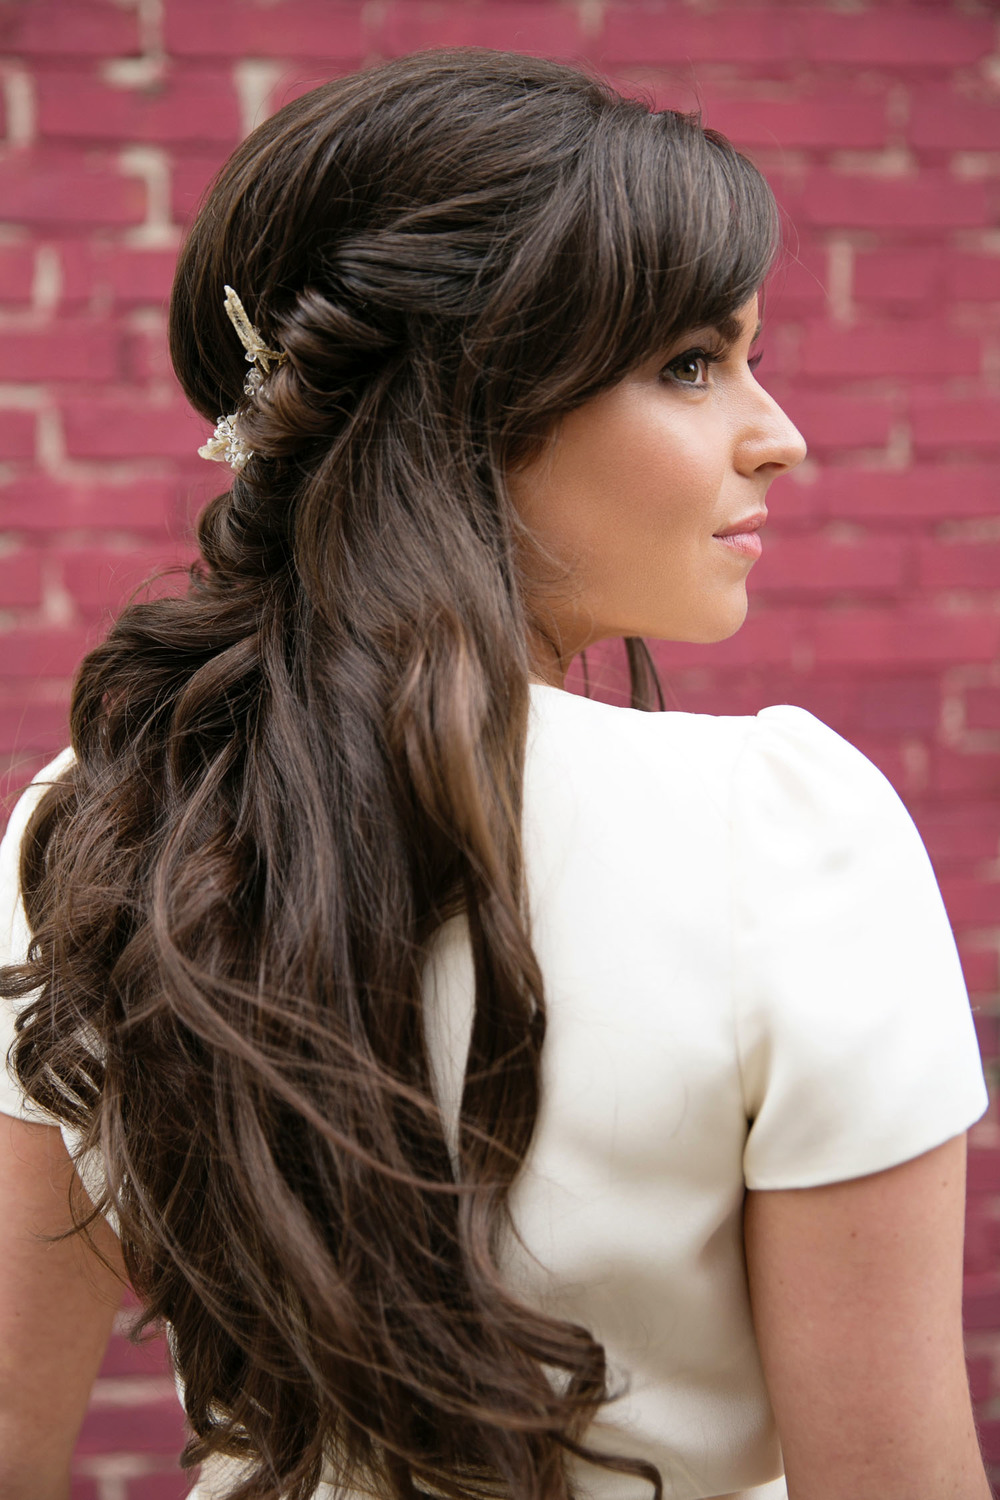 NC Image 8 - Bridal Hair and Makeup.jpg